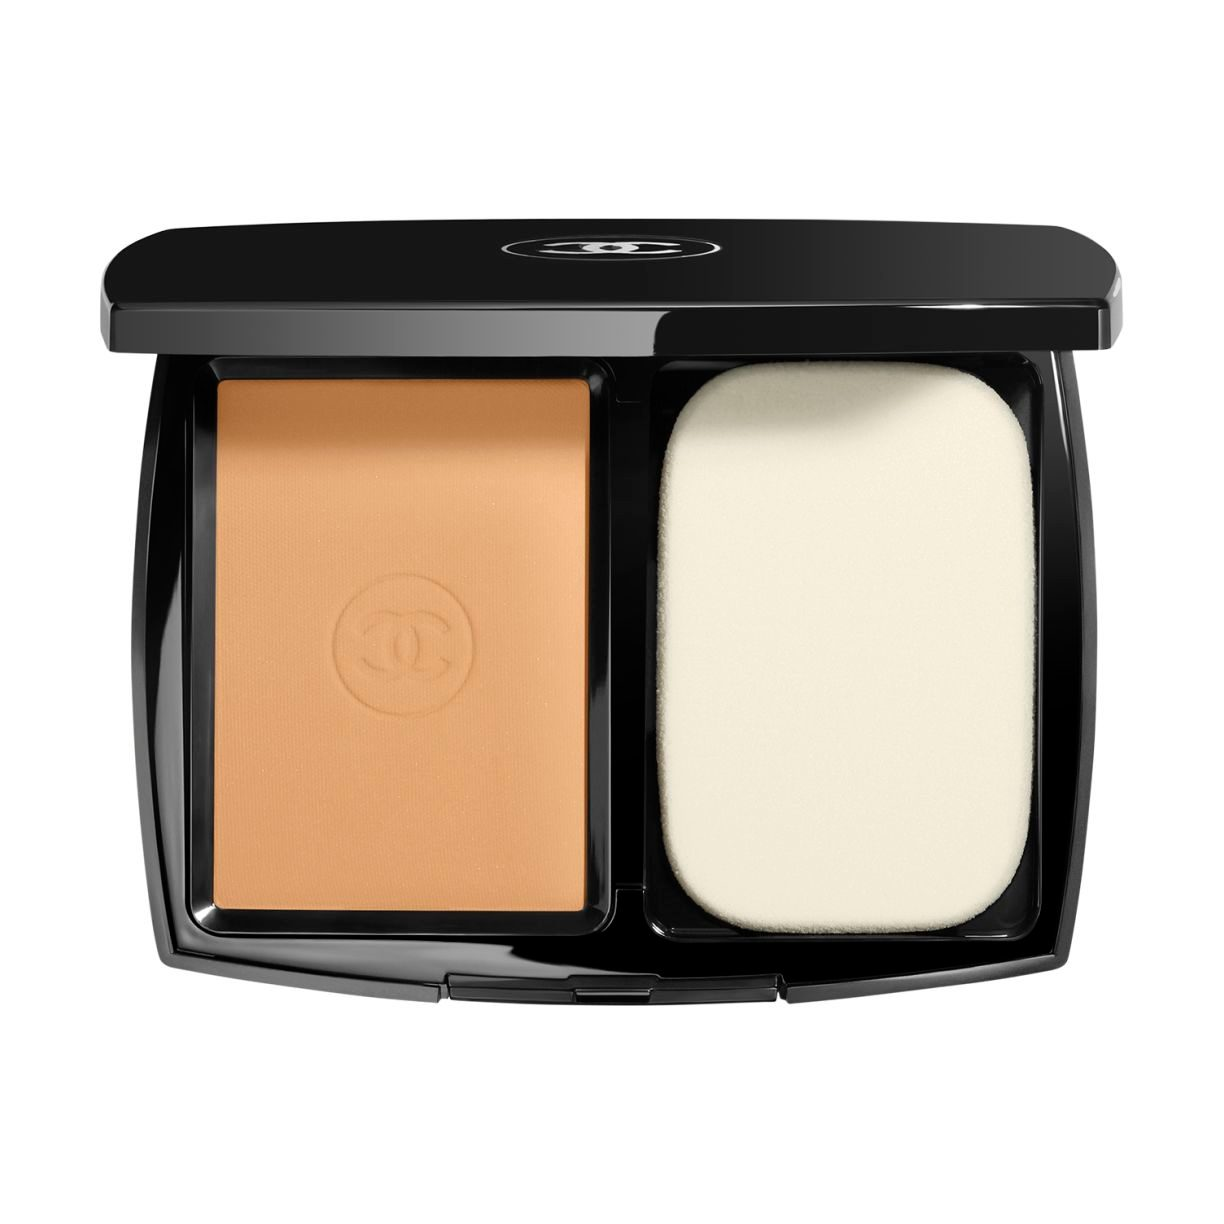 LE TEINT ULTRA TENUE ULTRAWEAR FLAWLESS COMPACT FOUNDATION SPF 15 91 - CARAMEL